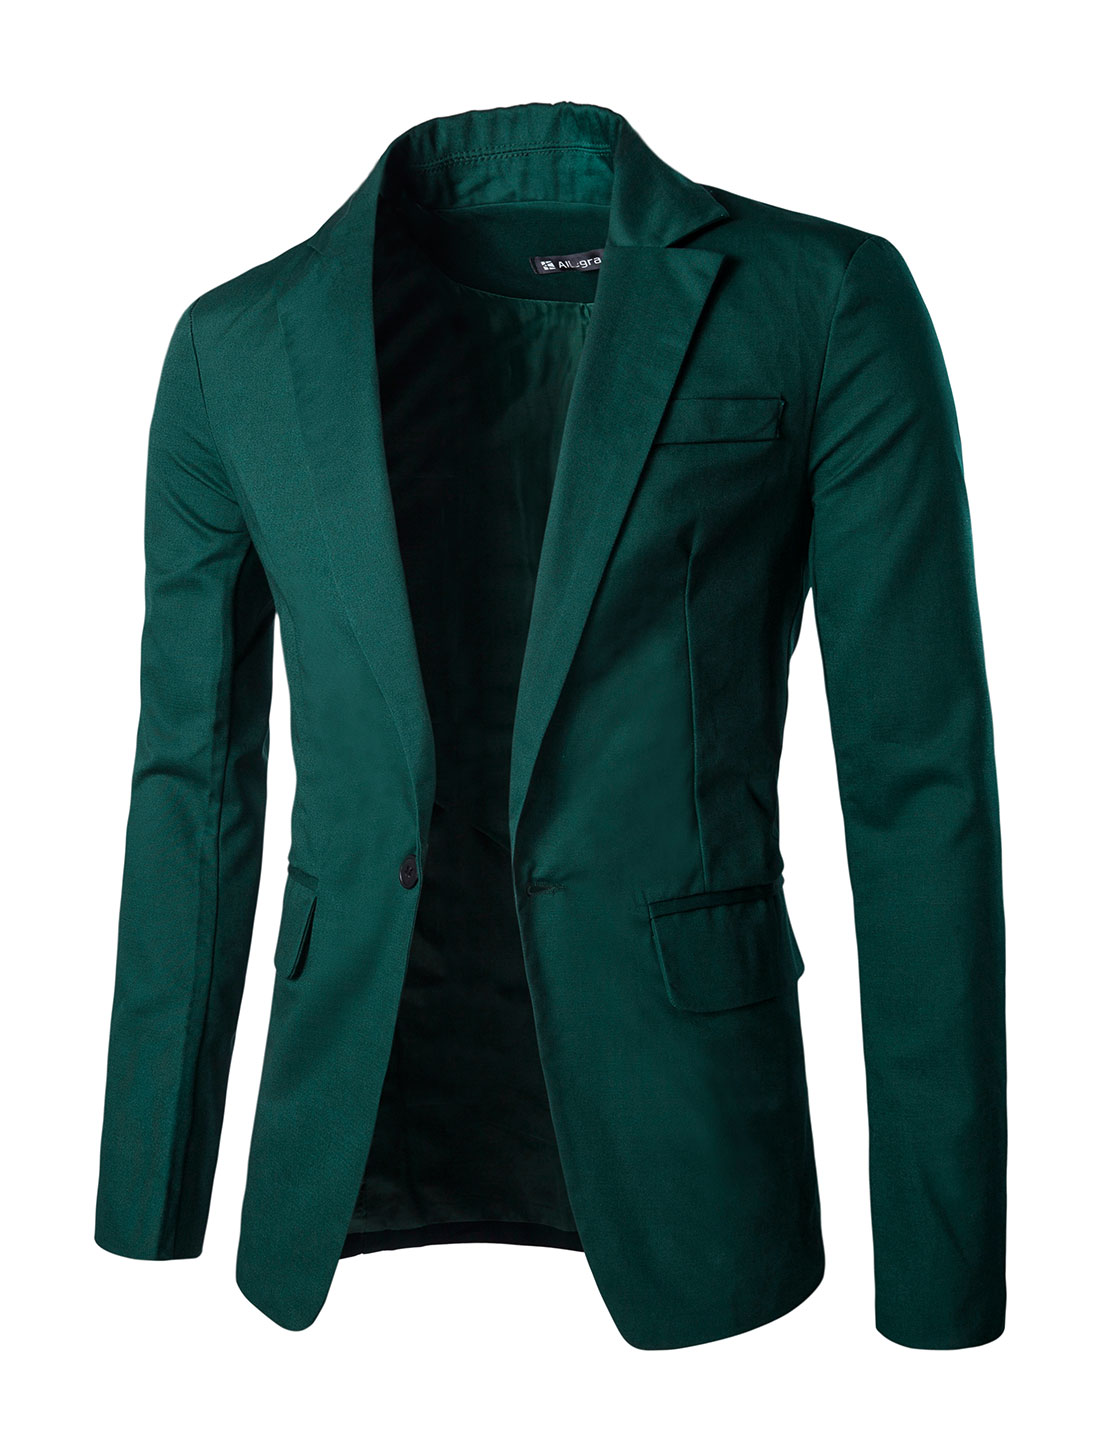 Unique Bargains Men's Notched Lapel Padded Shoulders Fashion Blazer Green (Size M / 40)